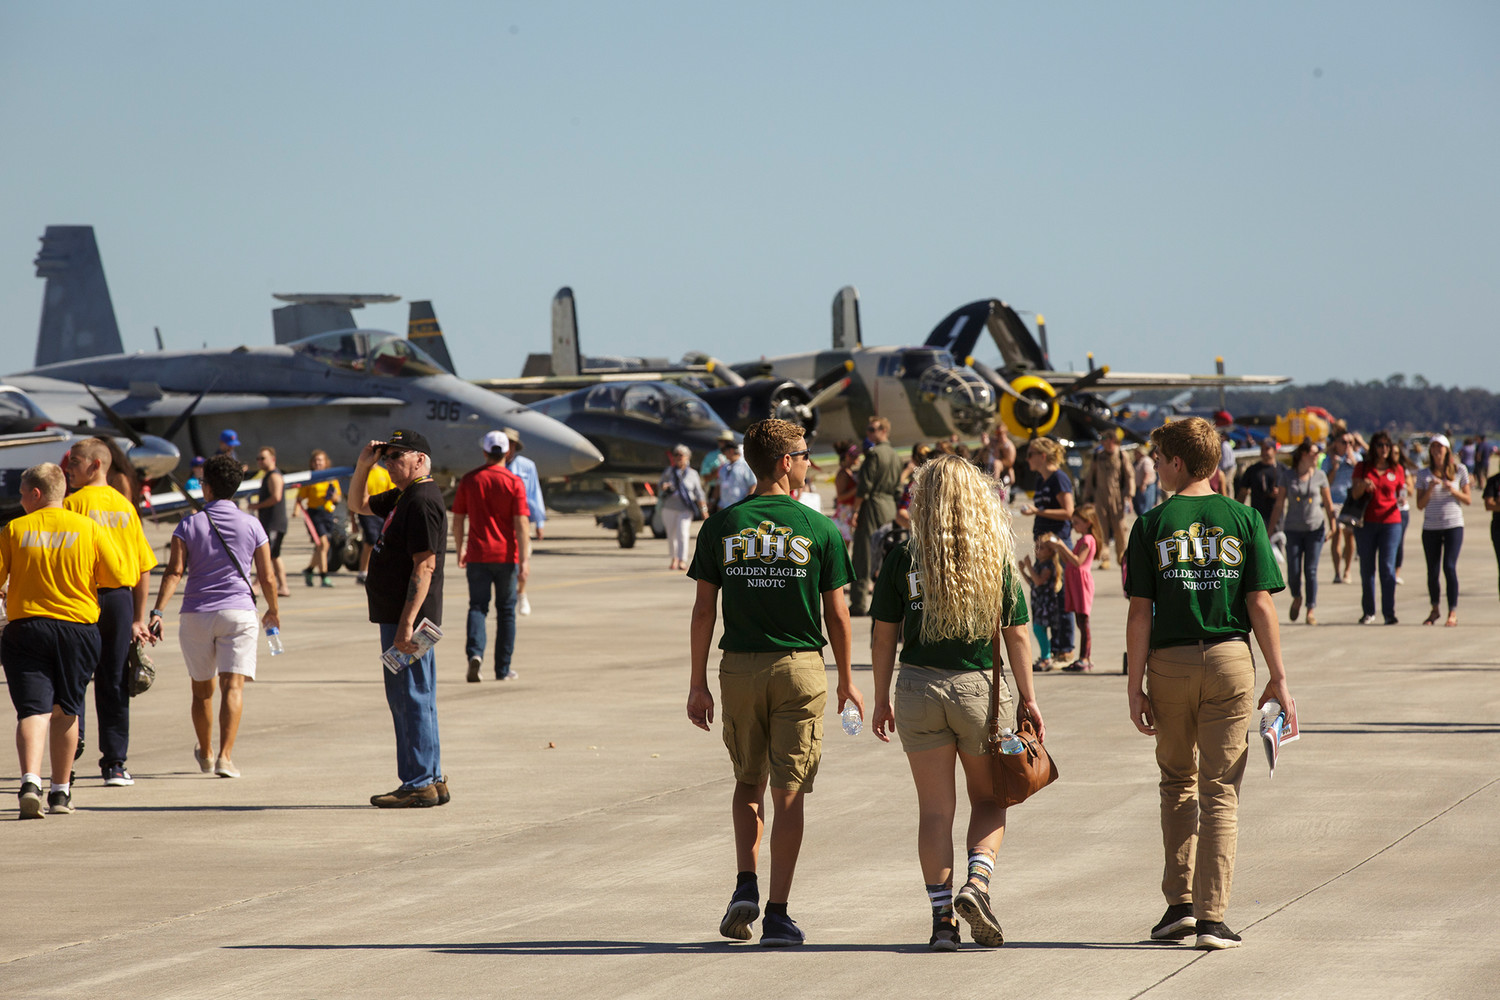 Members of the Fleming Island High School Navy JROTC program walk through a line of historic planes at Naval Air Station Jacksonville Friday during the rehearsal day for this year's air show.